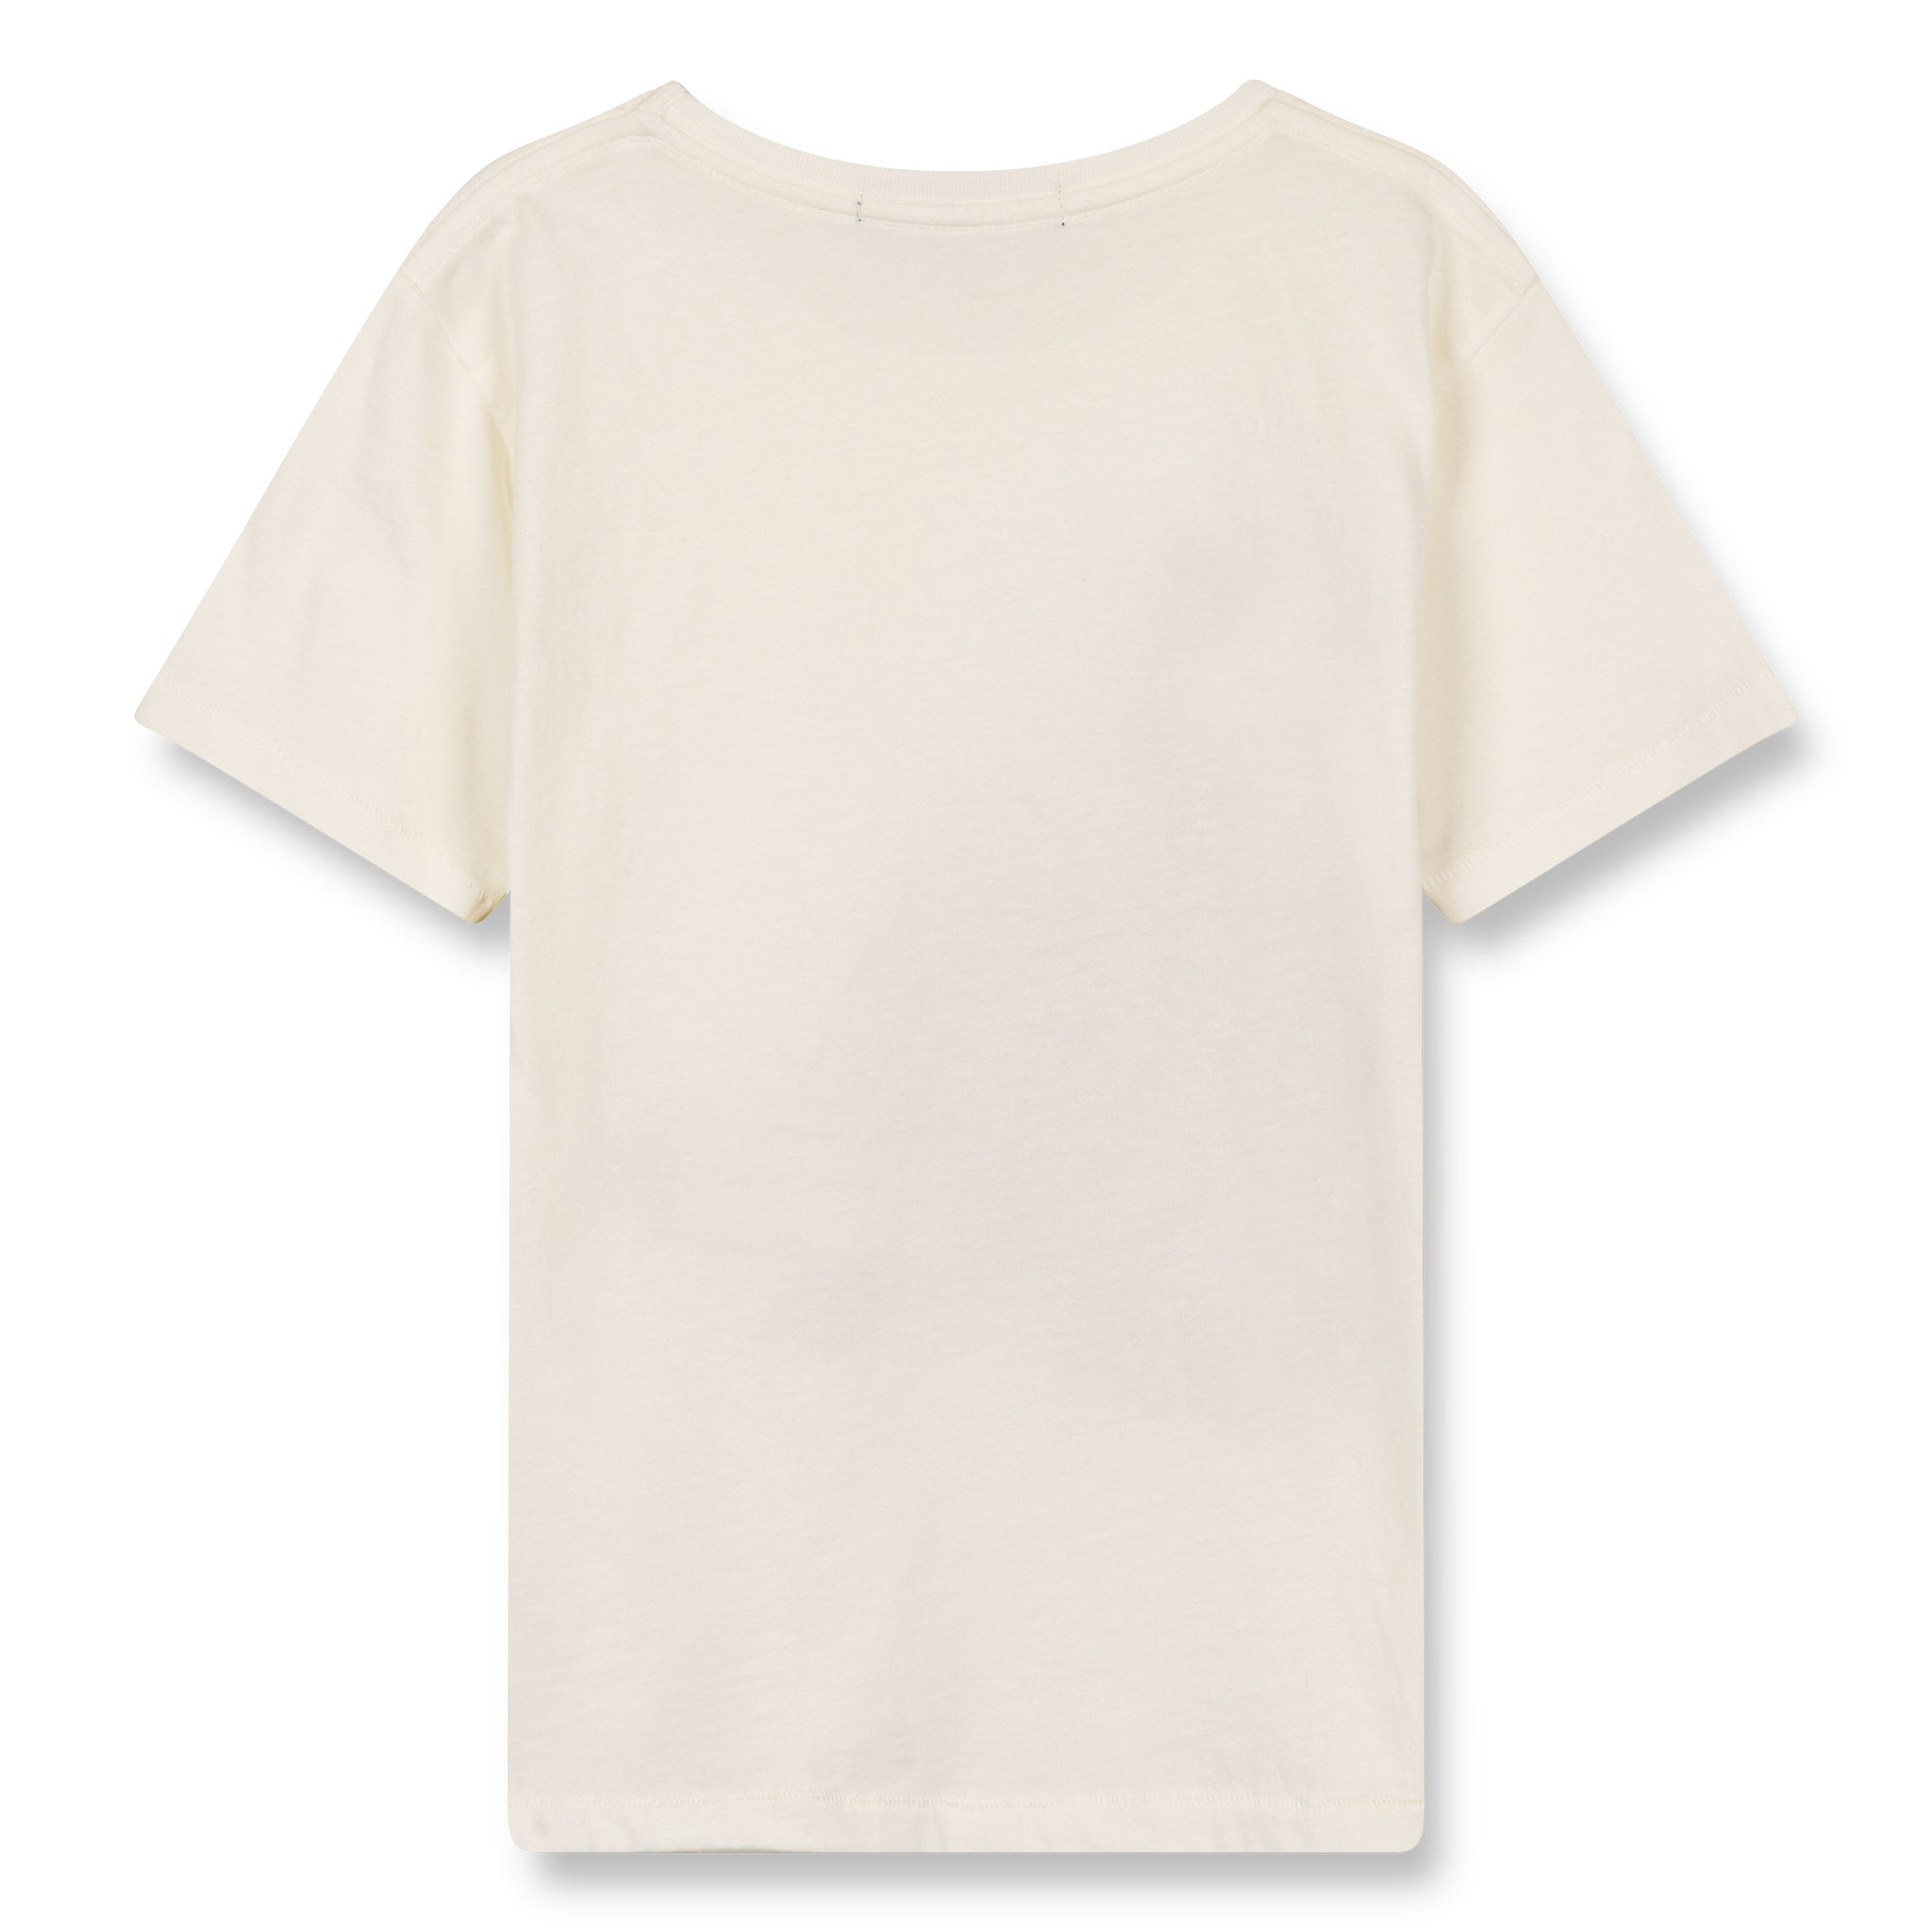 DALTON Off White Cruisin - Short Sleeves T-Shirt 3